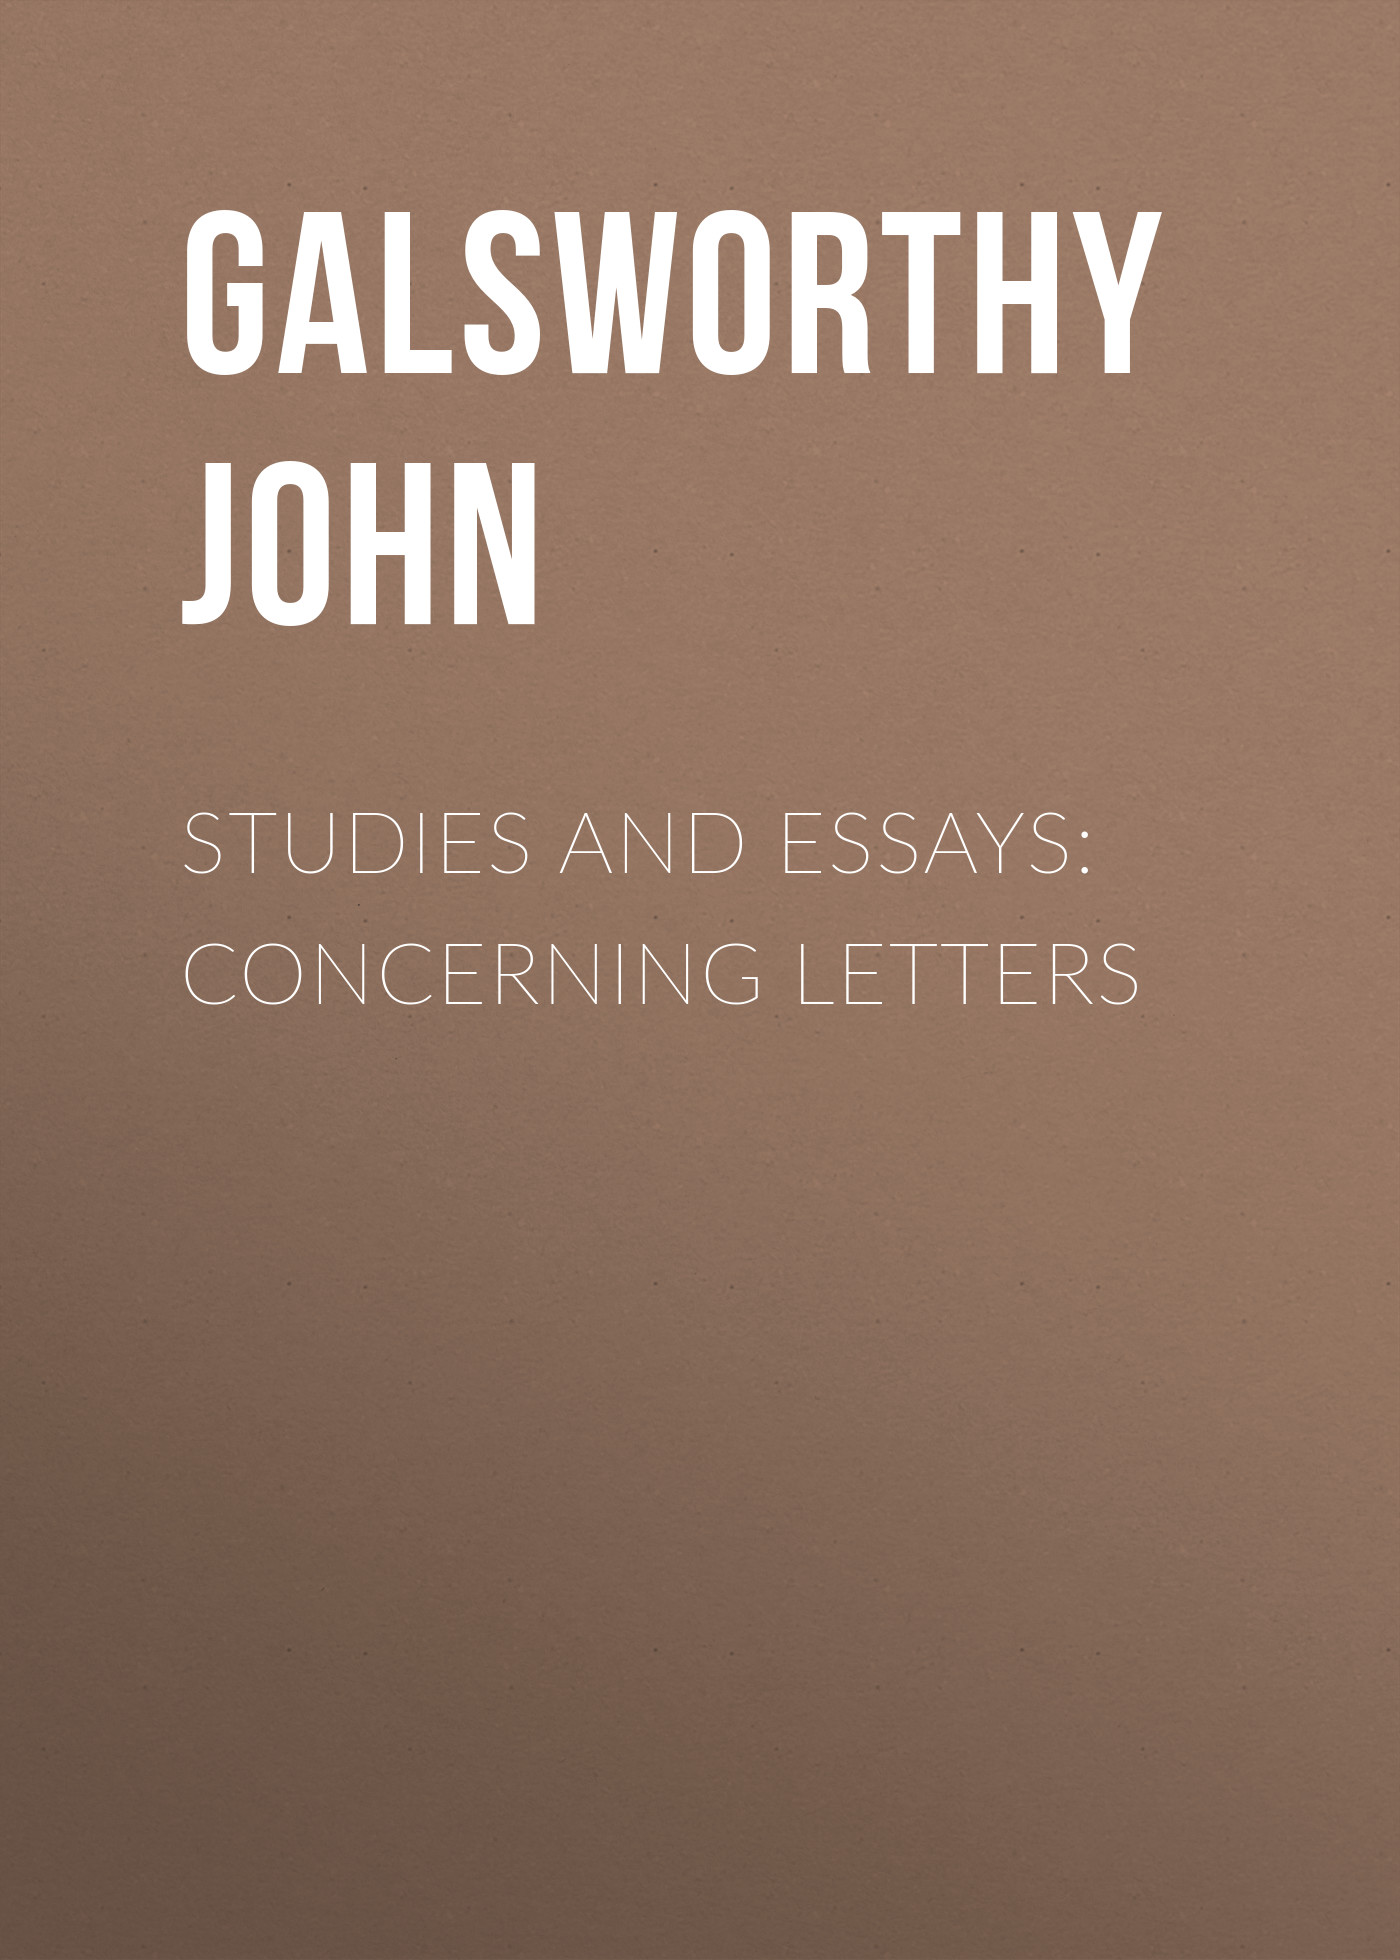 Galsworthy John Studies and Essays: Concerning Letters 2018 new led combination light box night lights lamp diy black and white letters cards usb port powered cinema lightbox letters